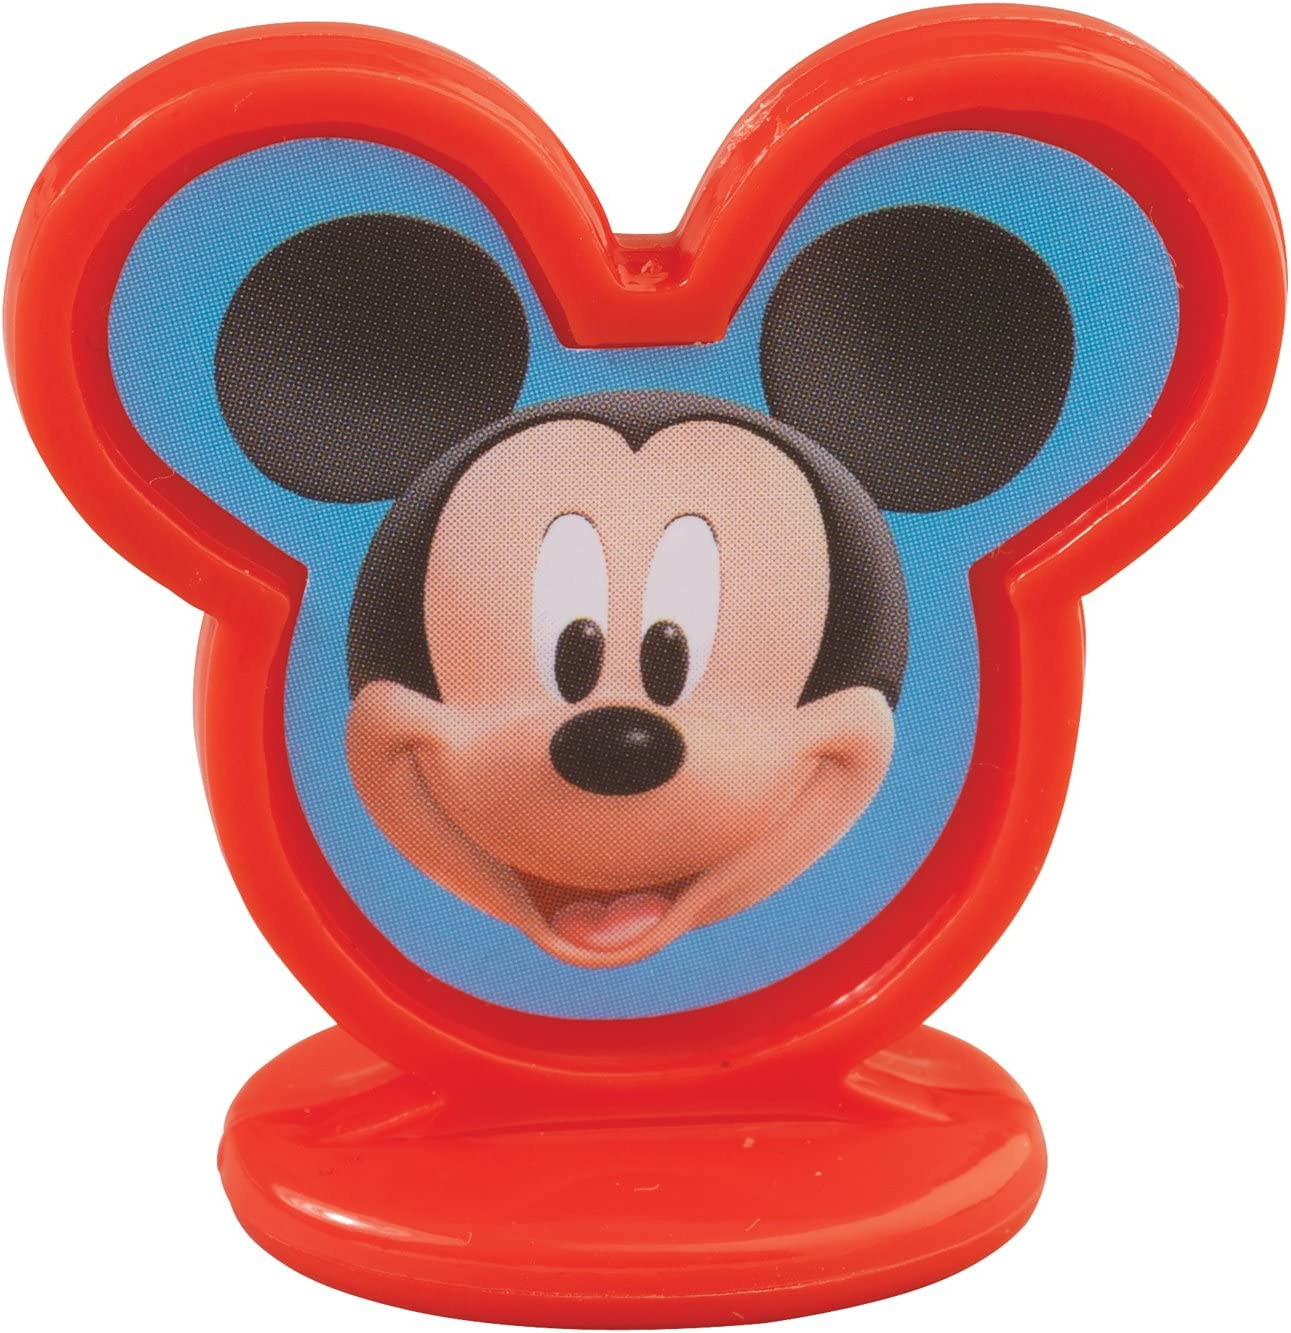 Disney Mickey Mouse Age 2 Cake Topper with stand Up Sign in Red DISCONTINUED